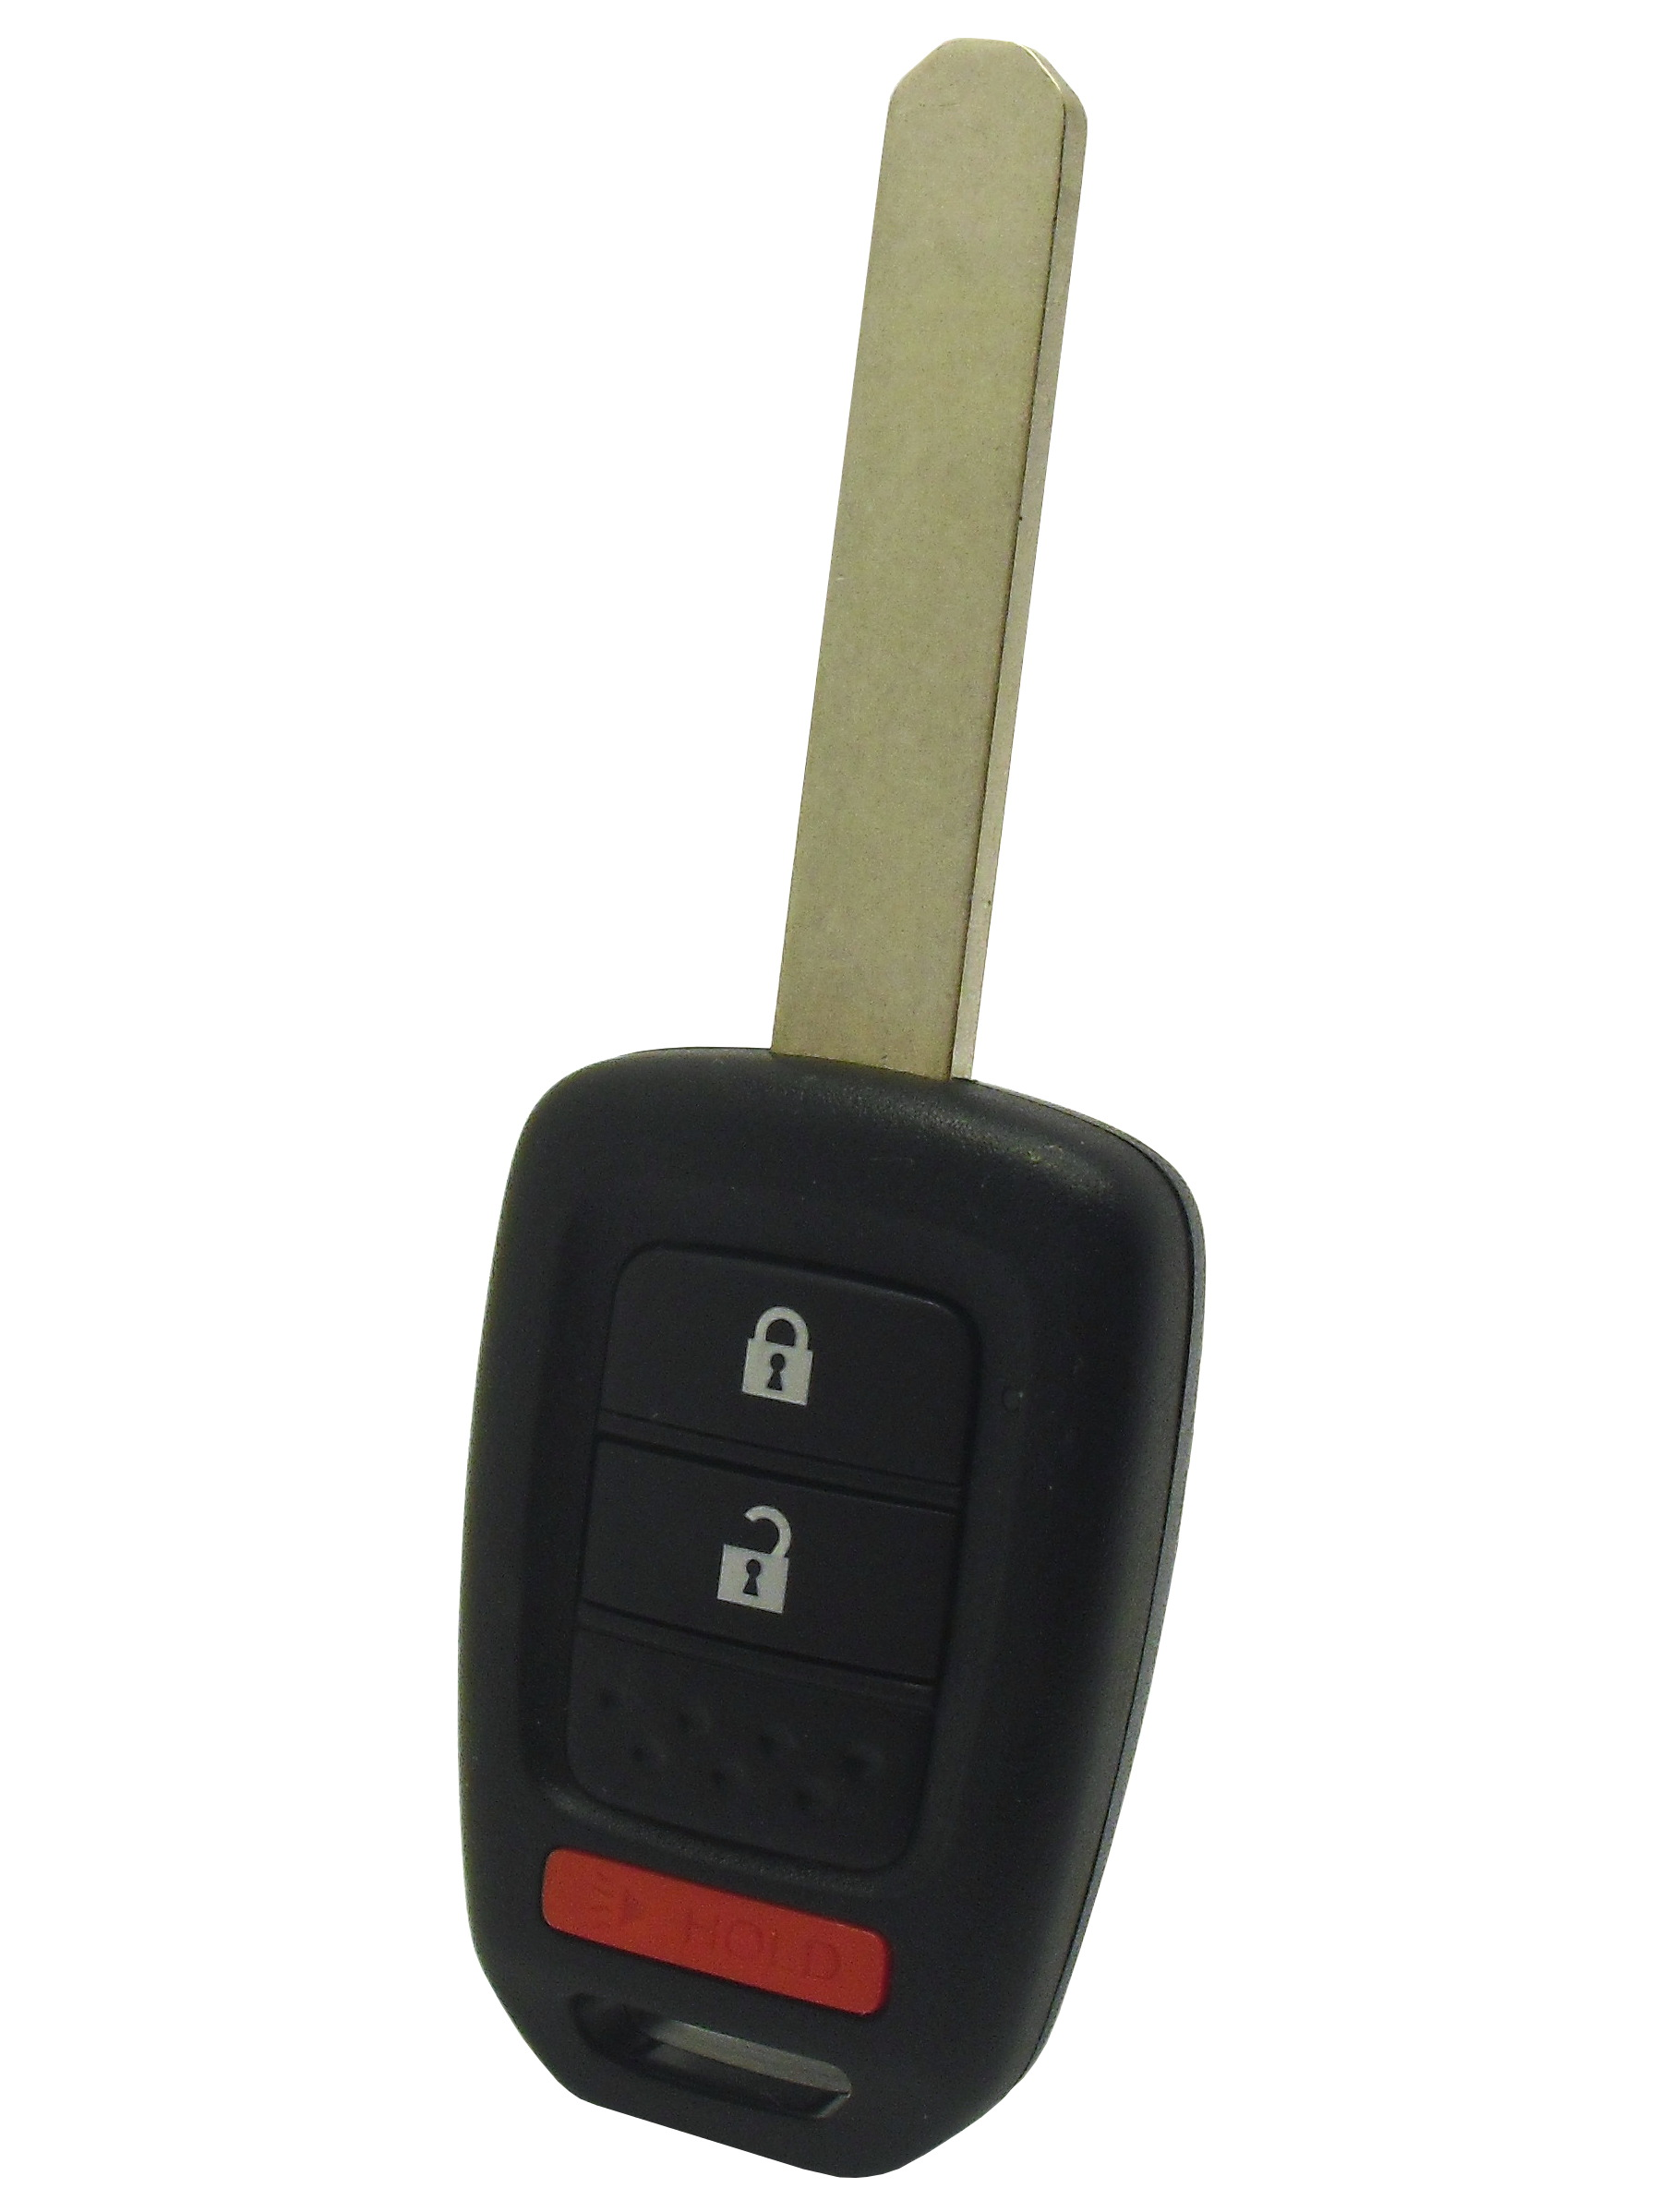 Honda Remote & Key Combo - 3 Button